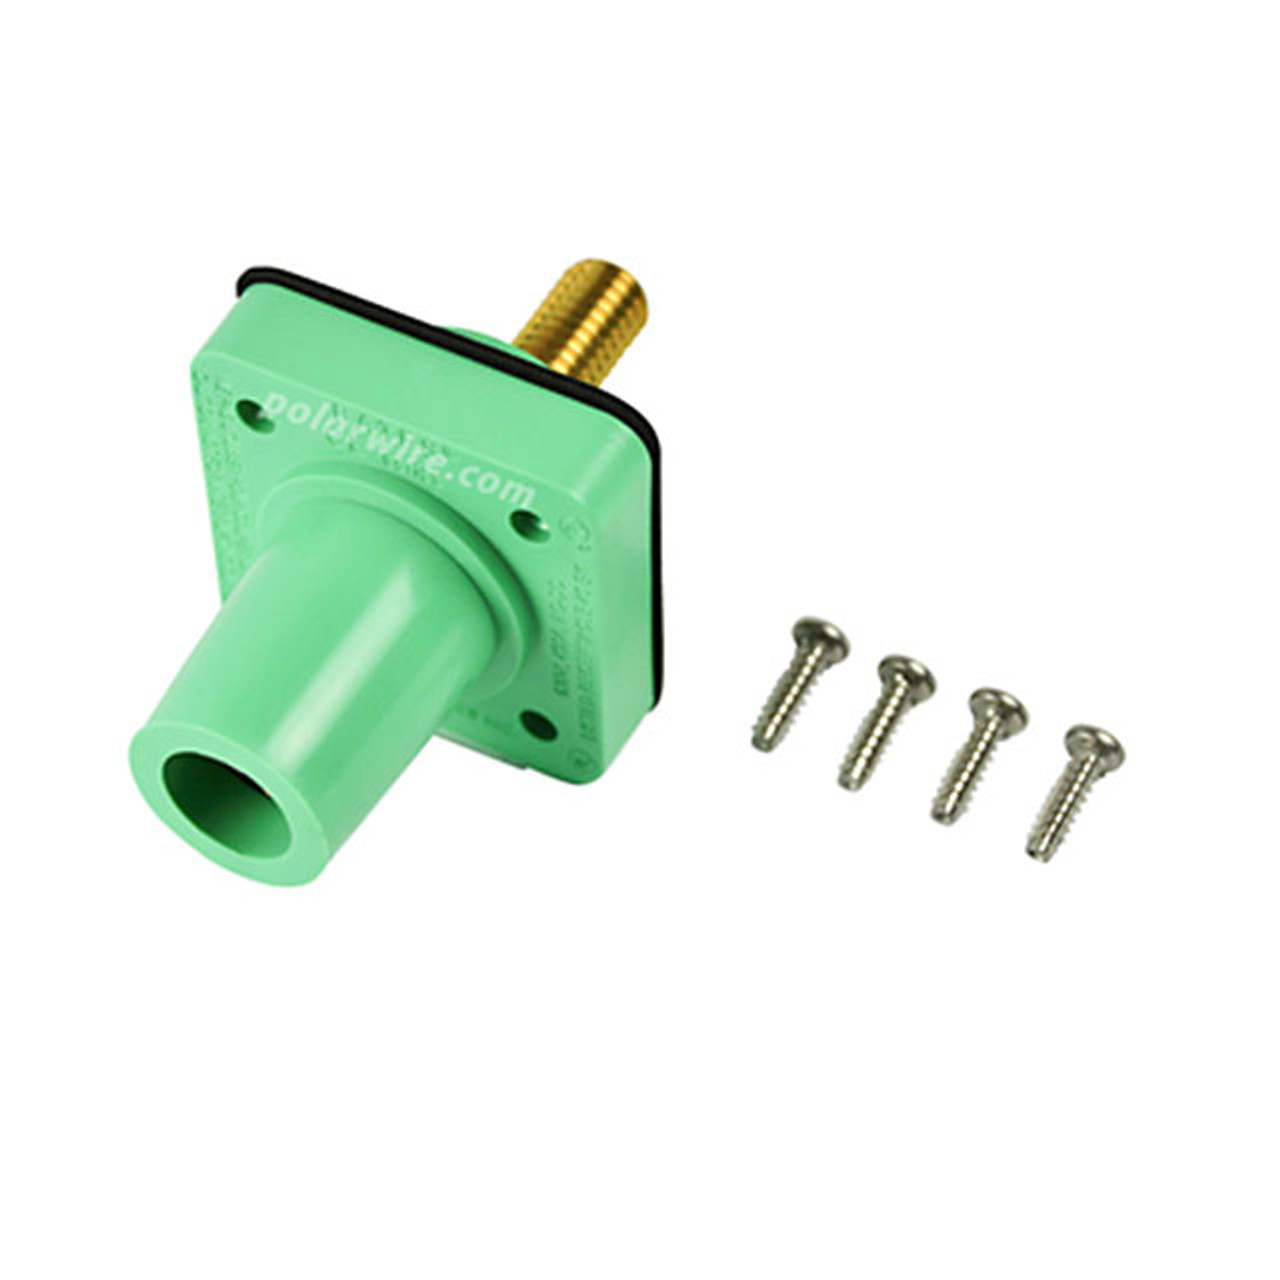 Marinco green 400A CL 16 Series female single pin panel mount cam lock connector with threaded stud for 2/0-4/0 AWG cable